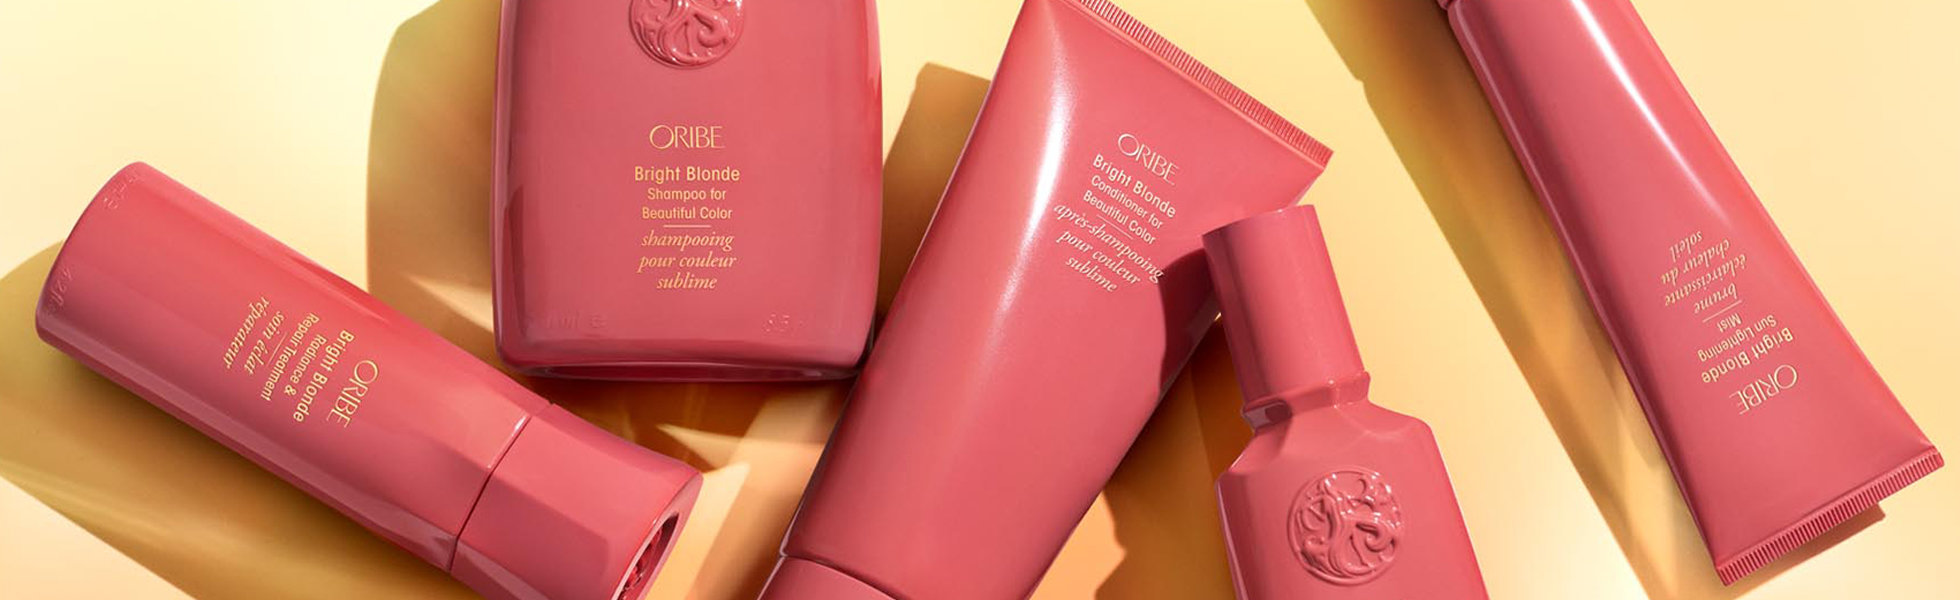 Oribe Bright Blonde Collection